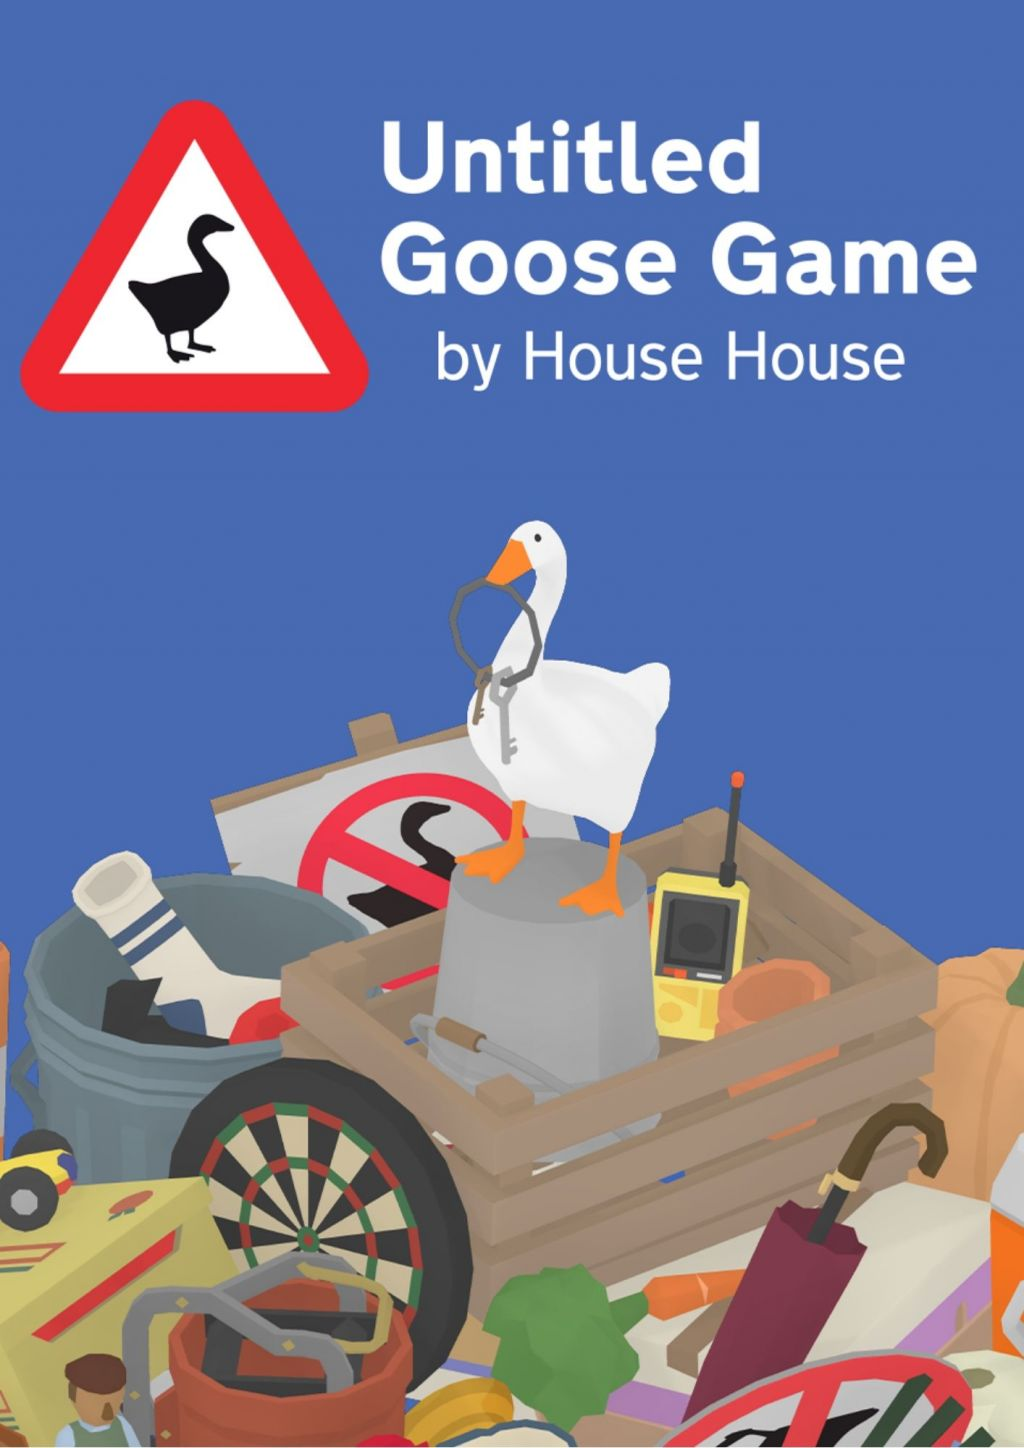 Untitled Goose Game ya está disponible en edición física para PS4 y Switch